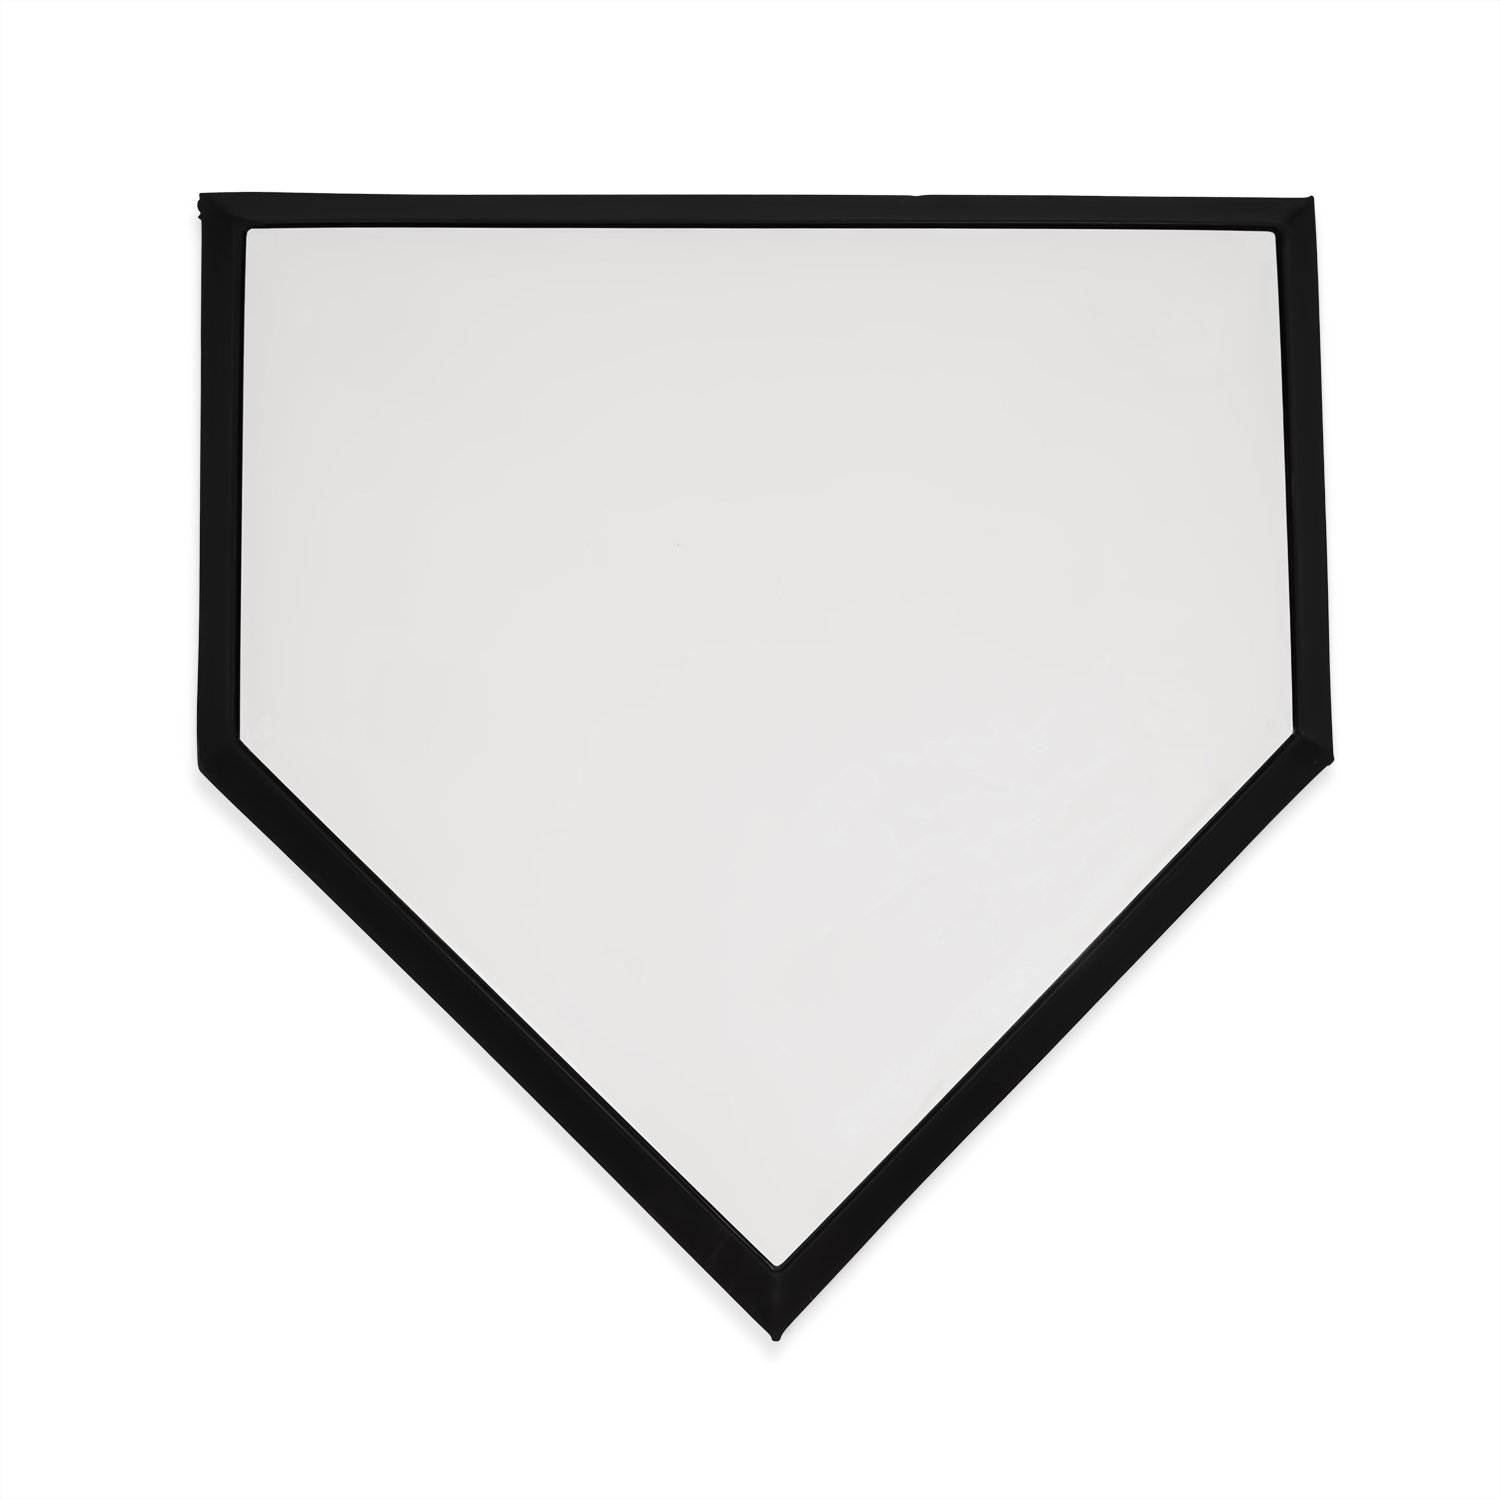 New Champion HPX Softball Slowpitch Homeplate Rubber Standard Size Extension Mat